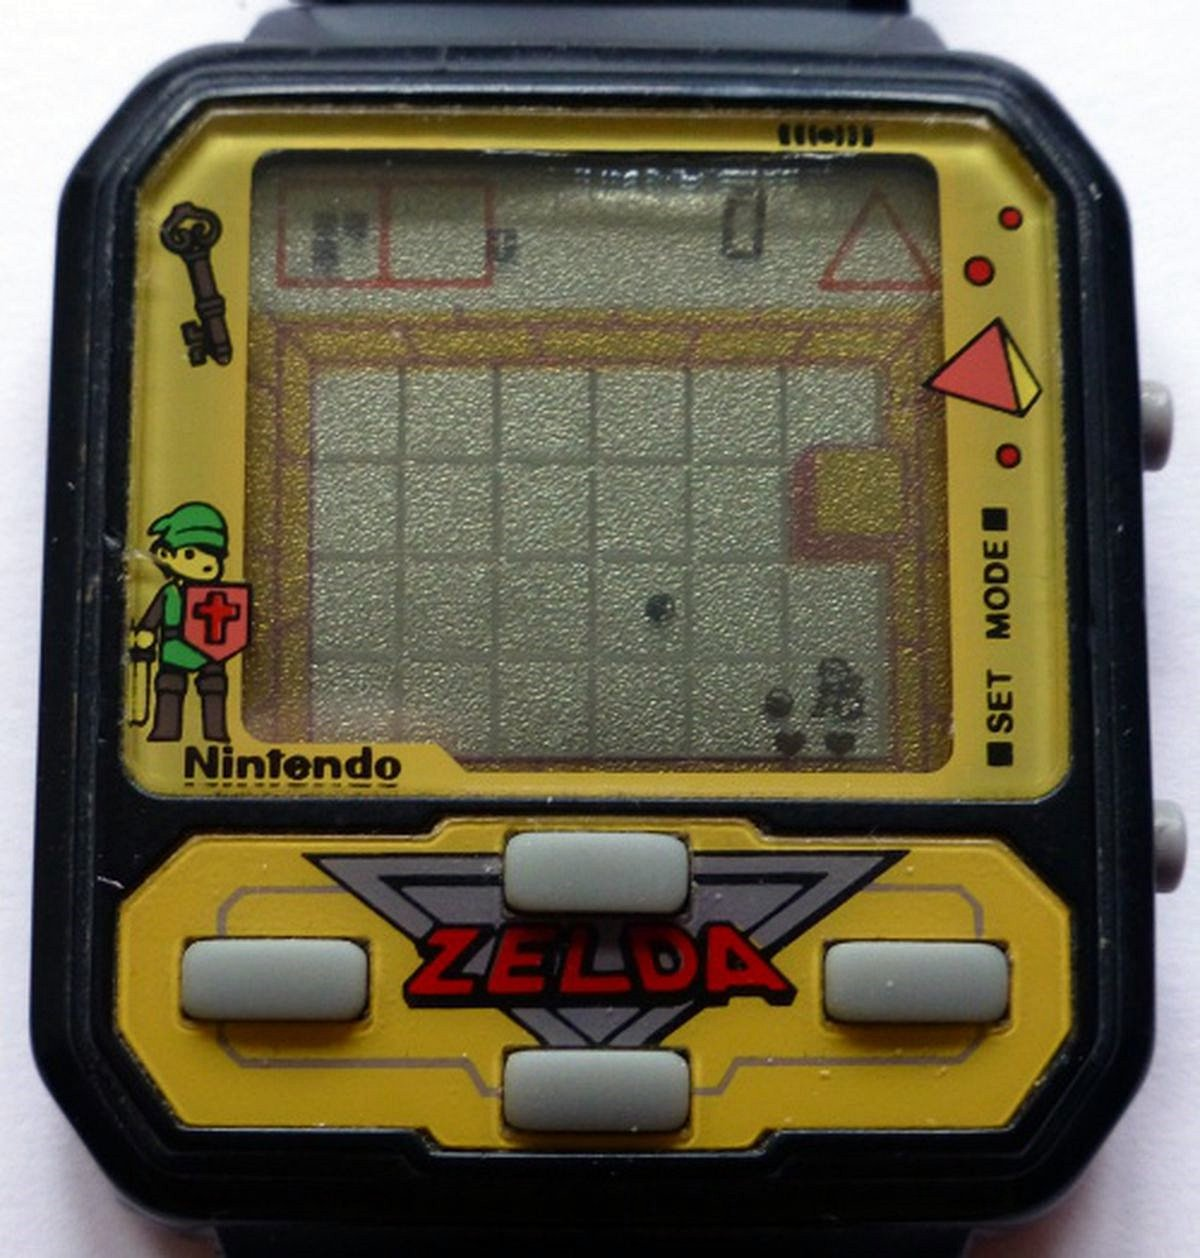 NELSONIC2 12 Of The Best Handheld Electronic Games From The 1980s